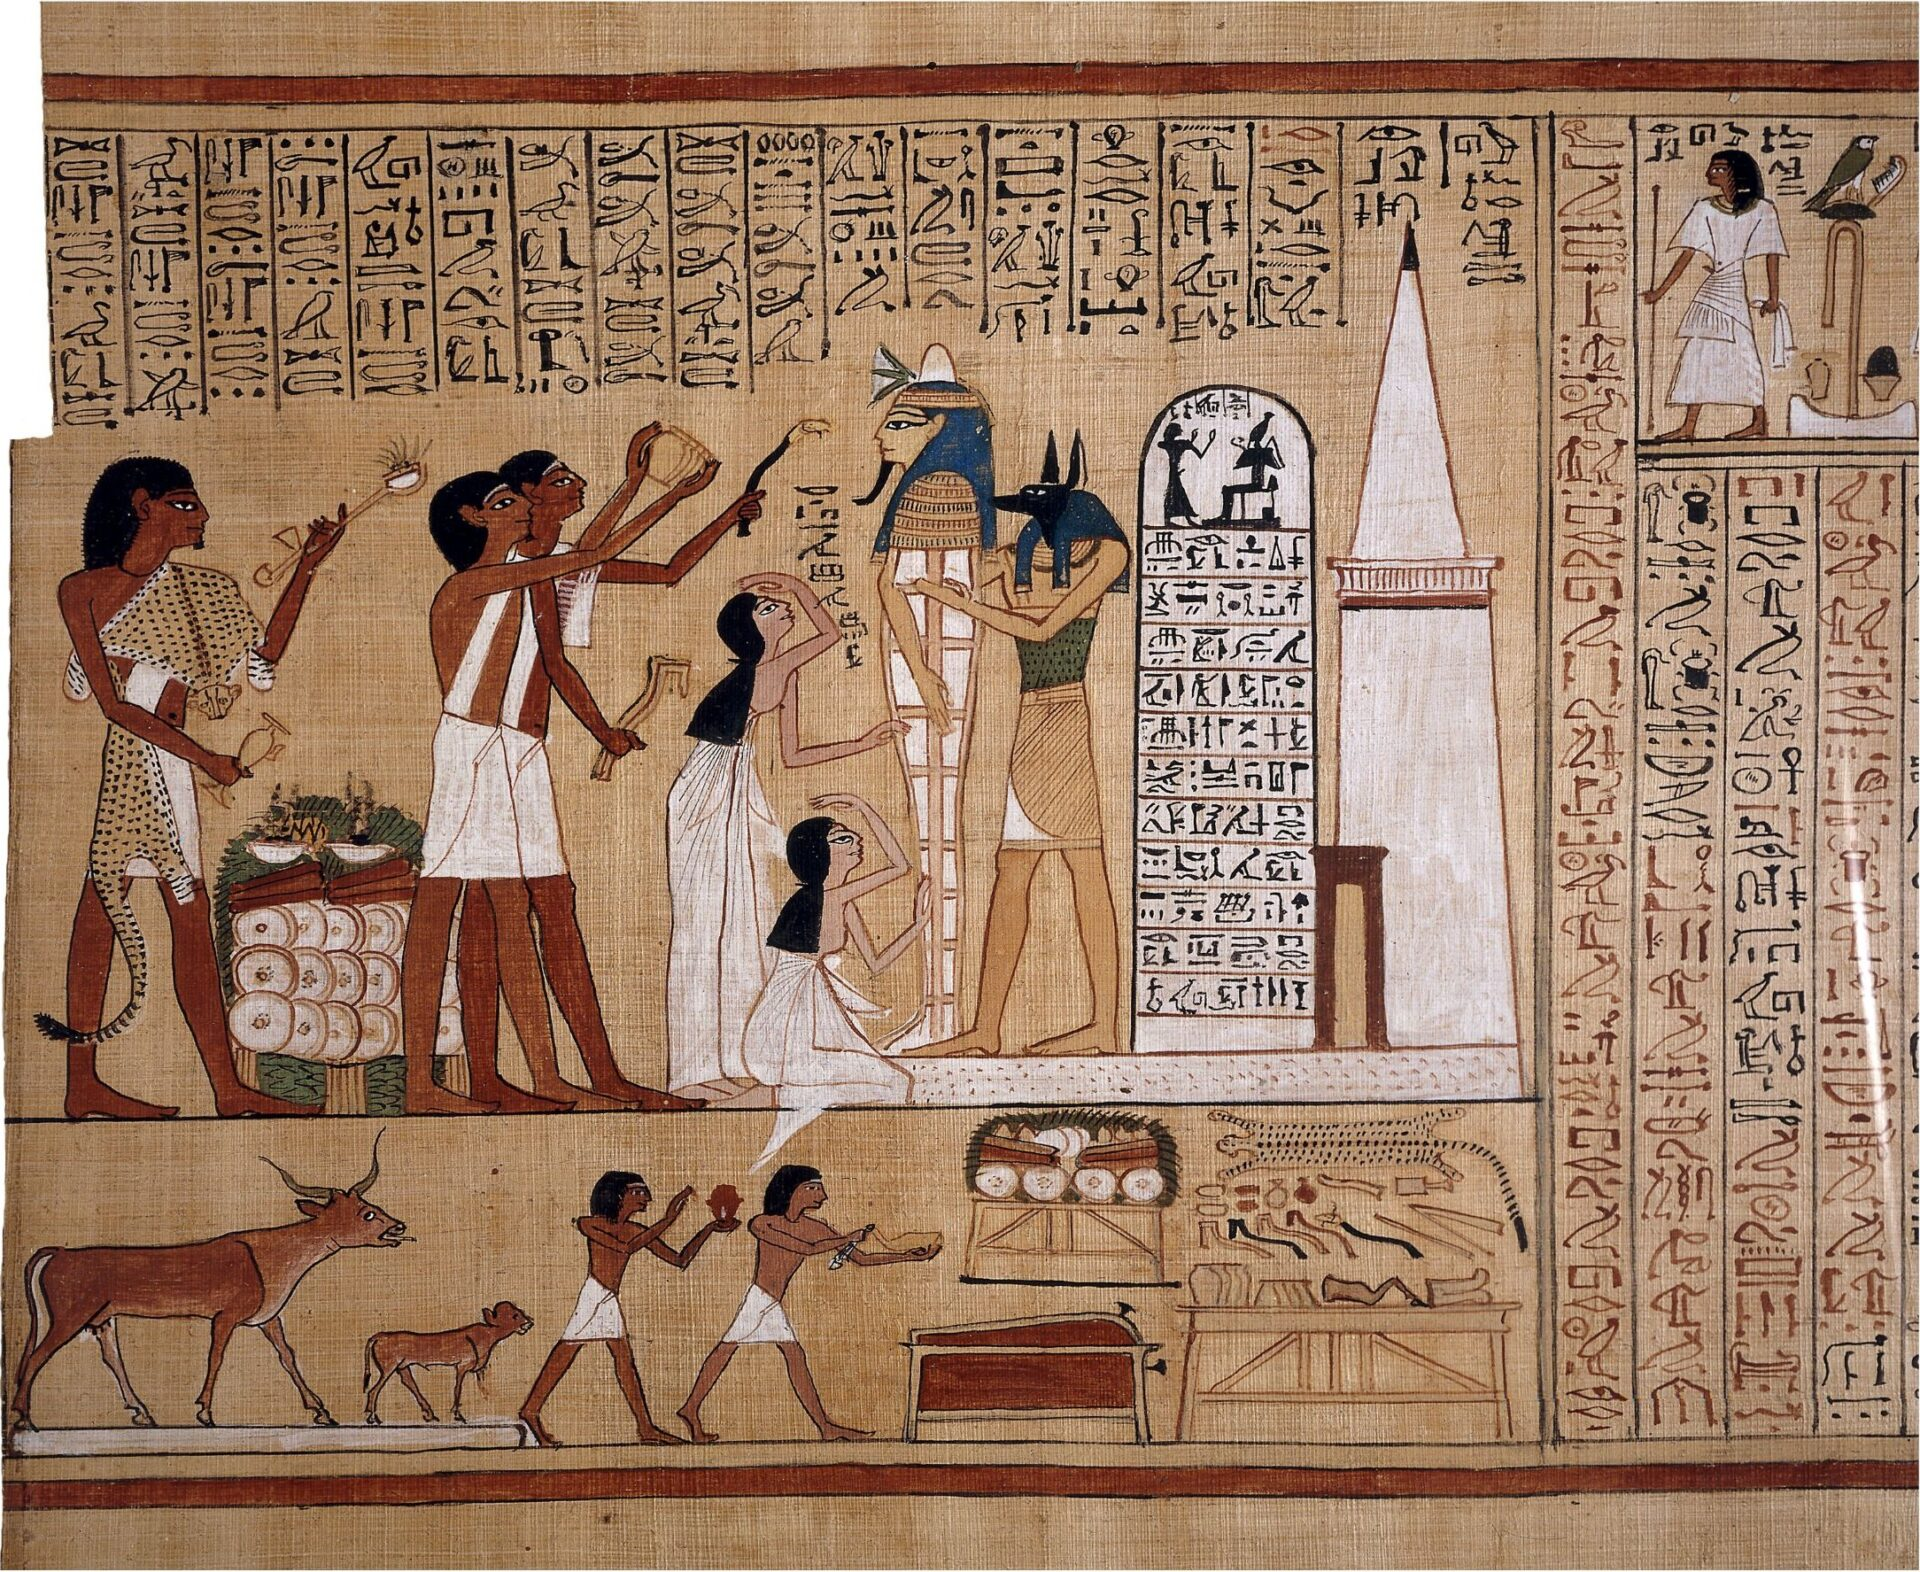 Religious practices and gods of ancient Egypt 40